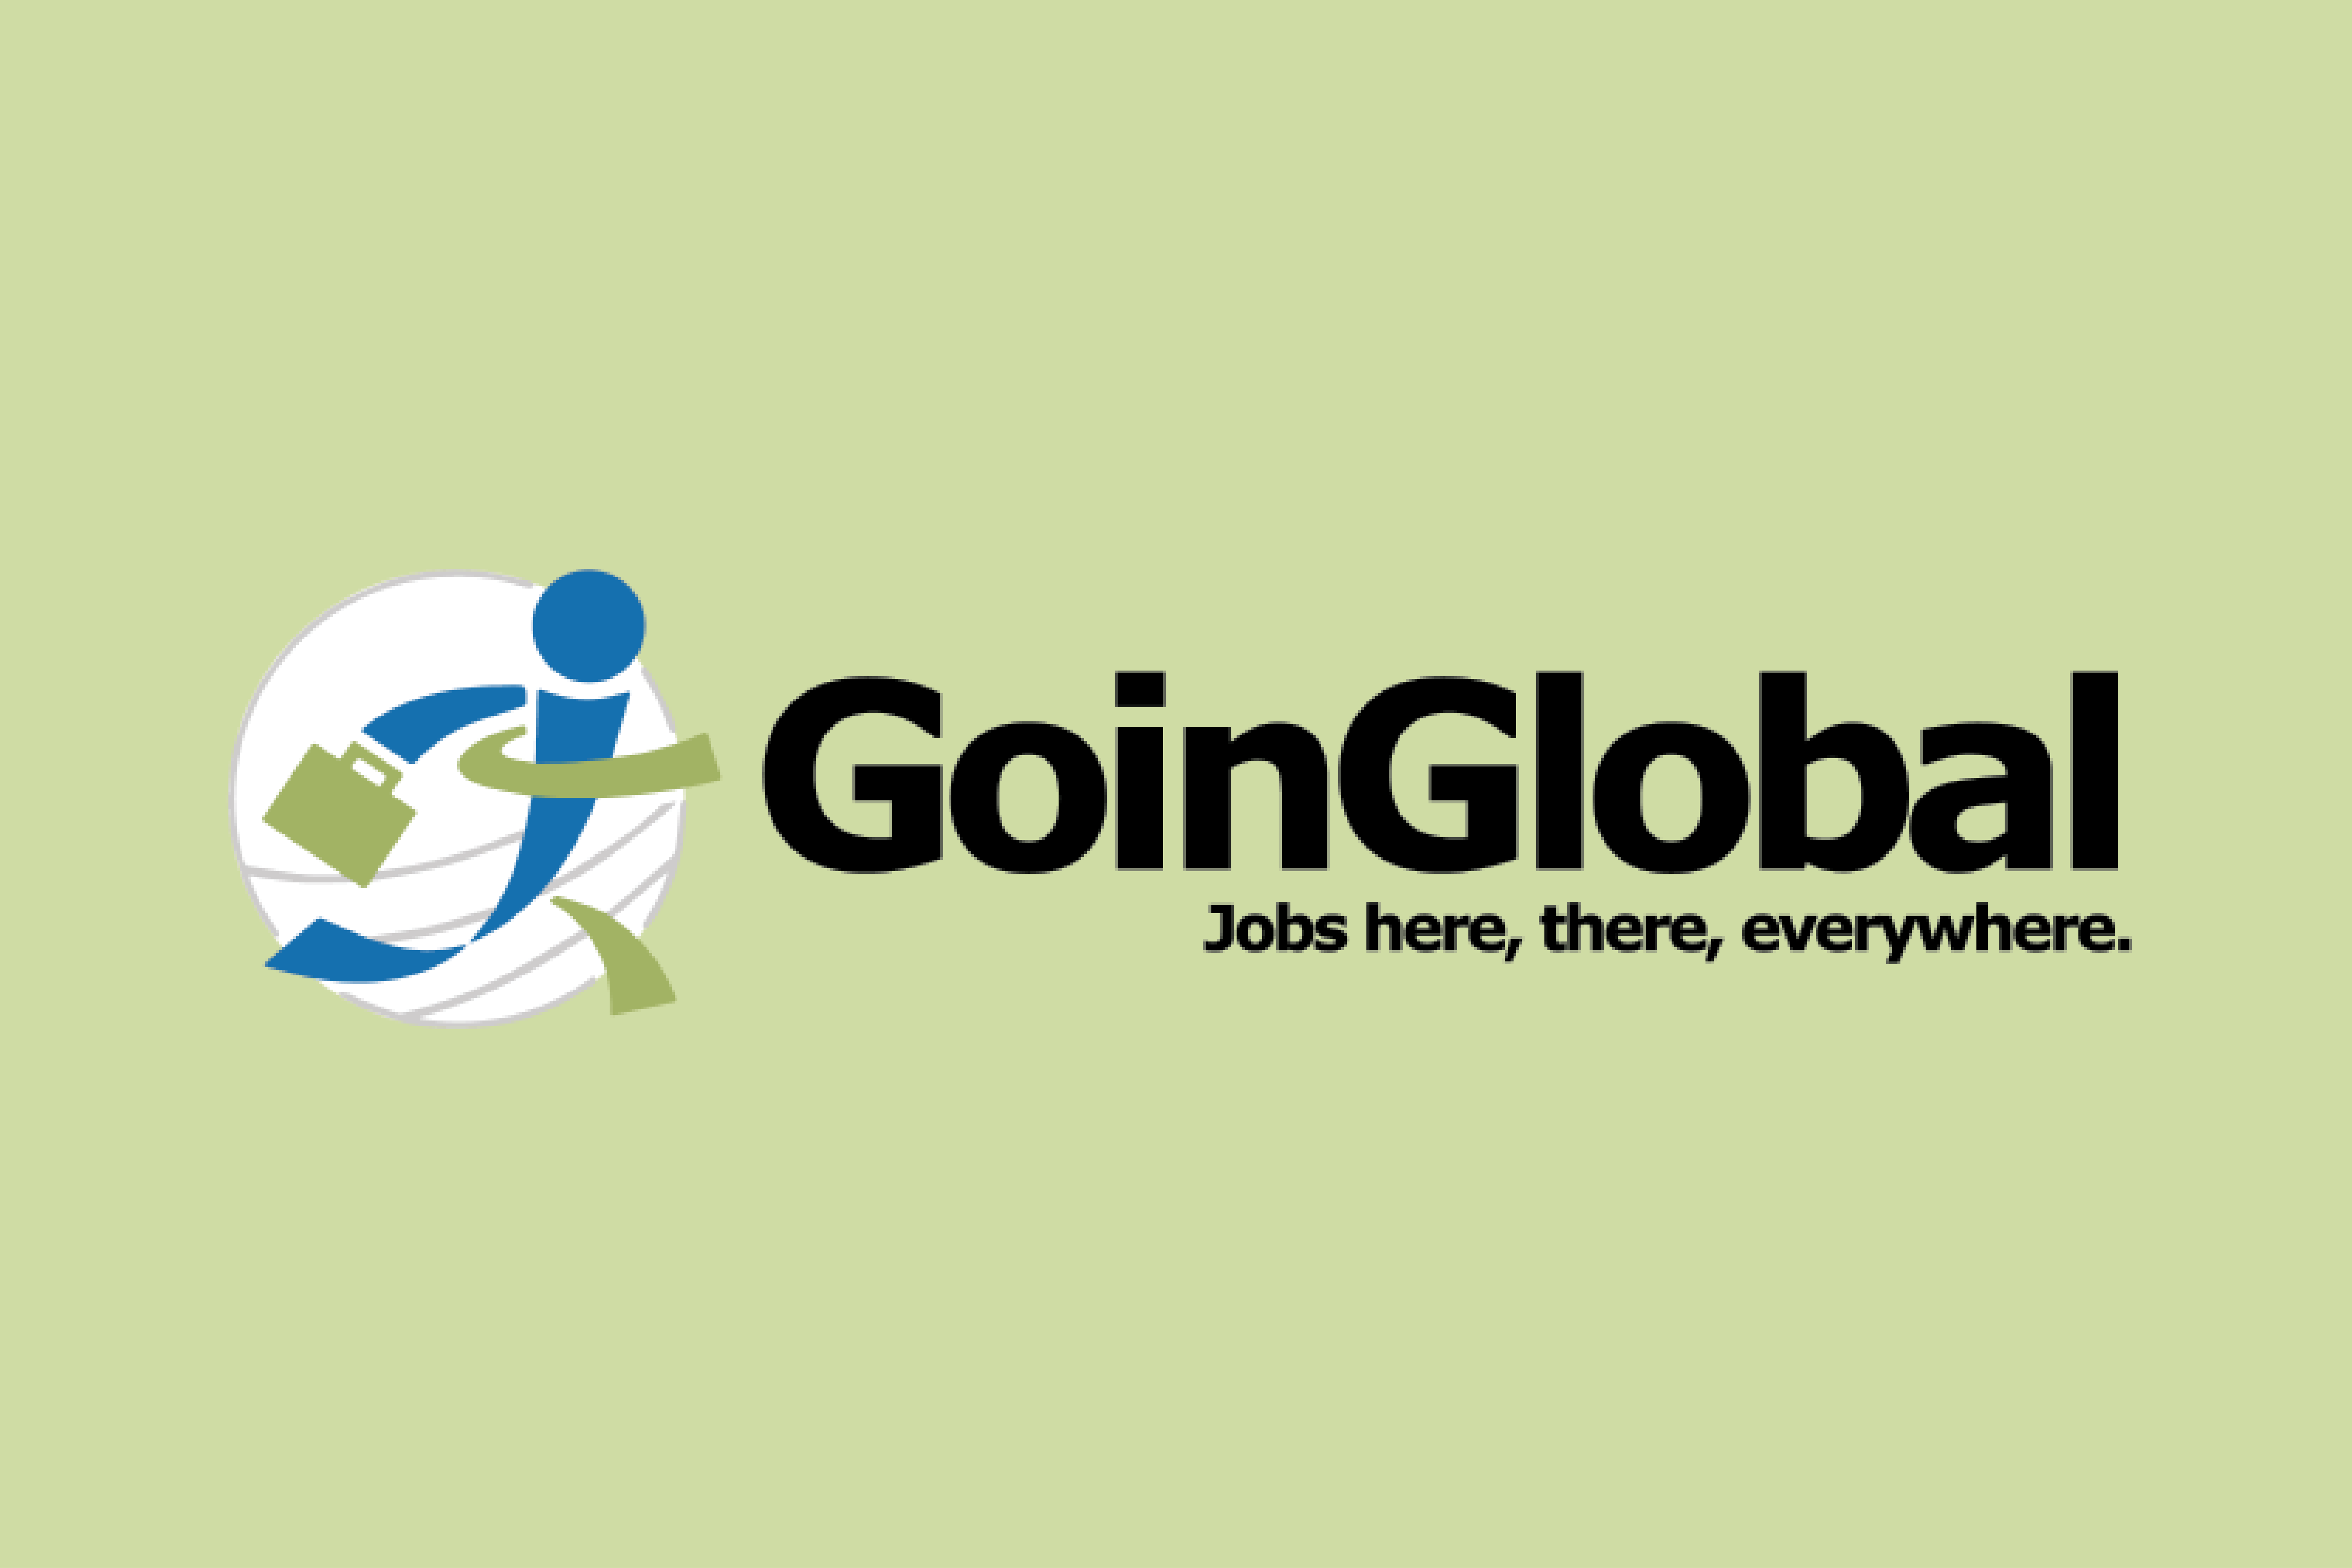 GoinGlobal link